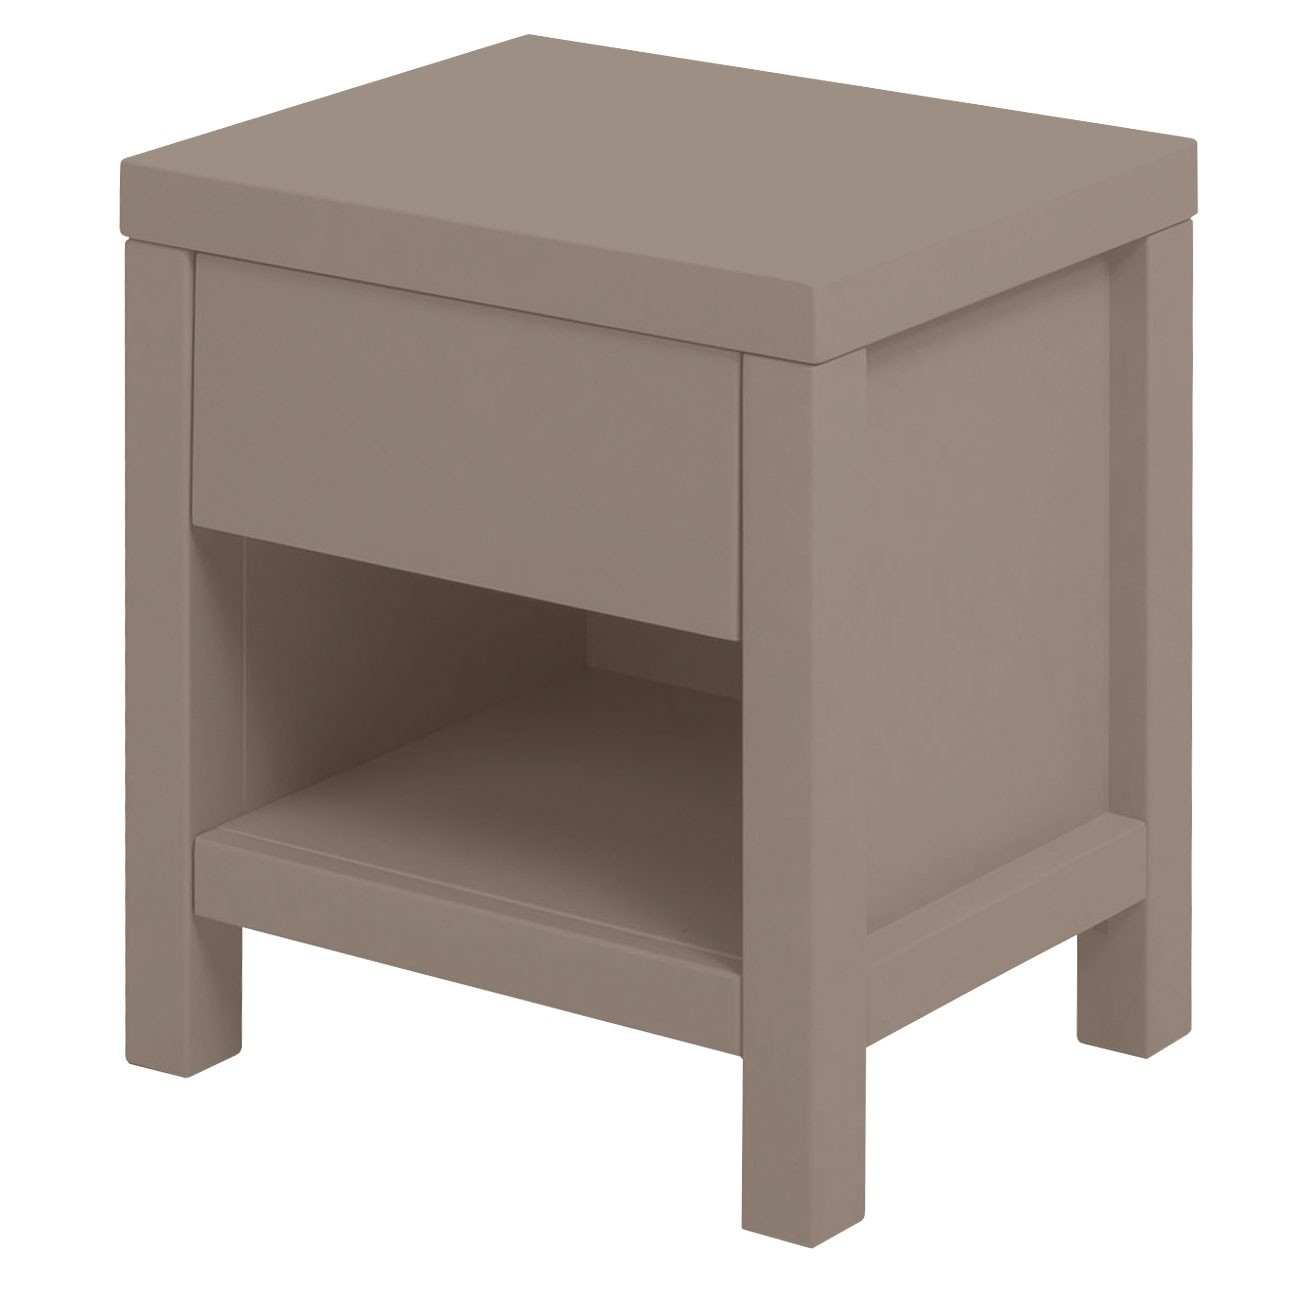 Table de nuit Joy - Provence Marron / Taupe Quax